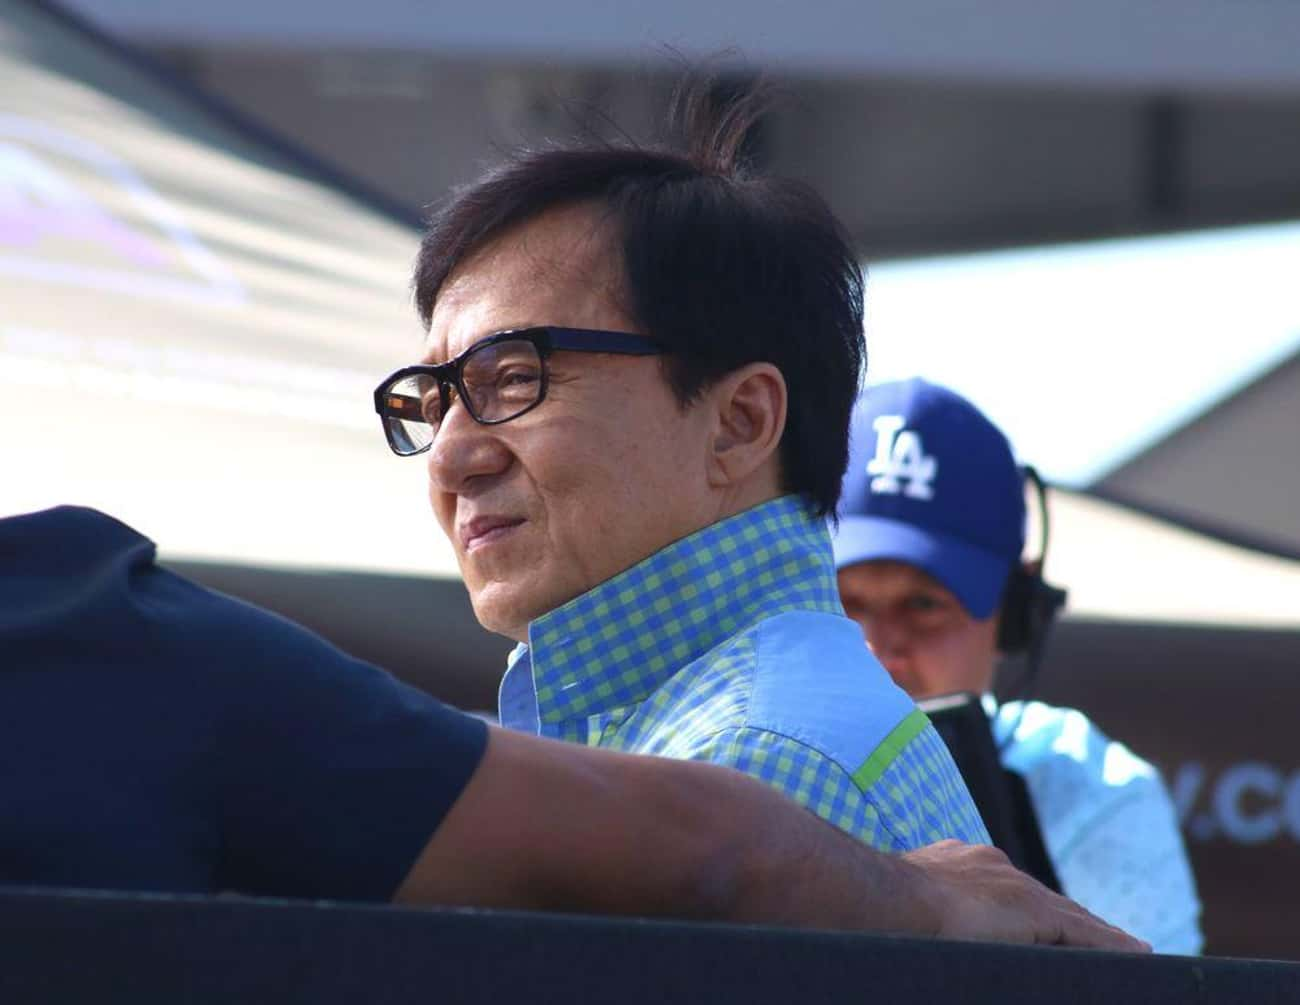 He Has A Child He Doesn't Ackn is listed (or ranked) 3 on the list Inside Jackie Chan's Storied Life And Career